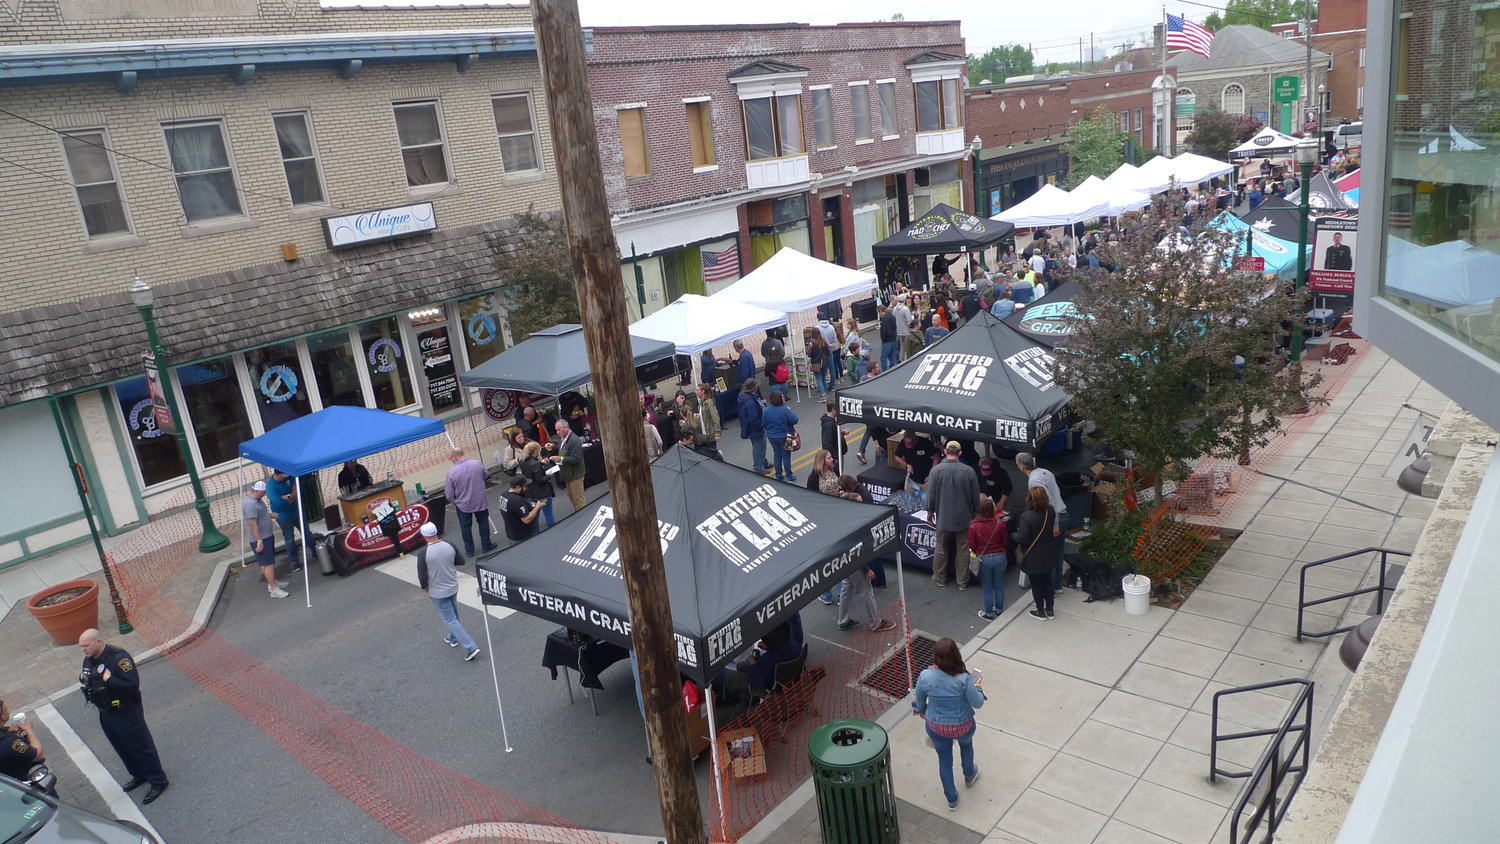 The view from the second floor of Tattered Flag of the Little Little Beer Festival on South Union Street in Middletown on May 1. Twenty-eight craft beer vendors from throughout Pennsylvania set up their stands all the way down to Brown Street.